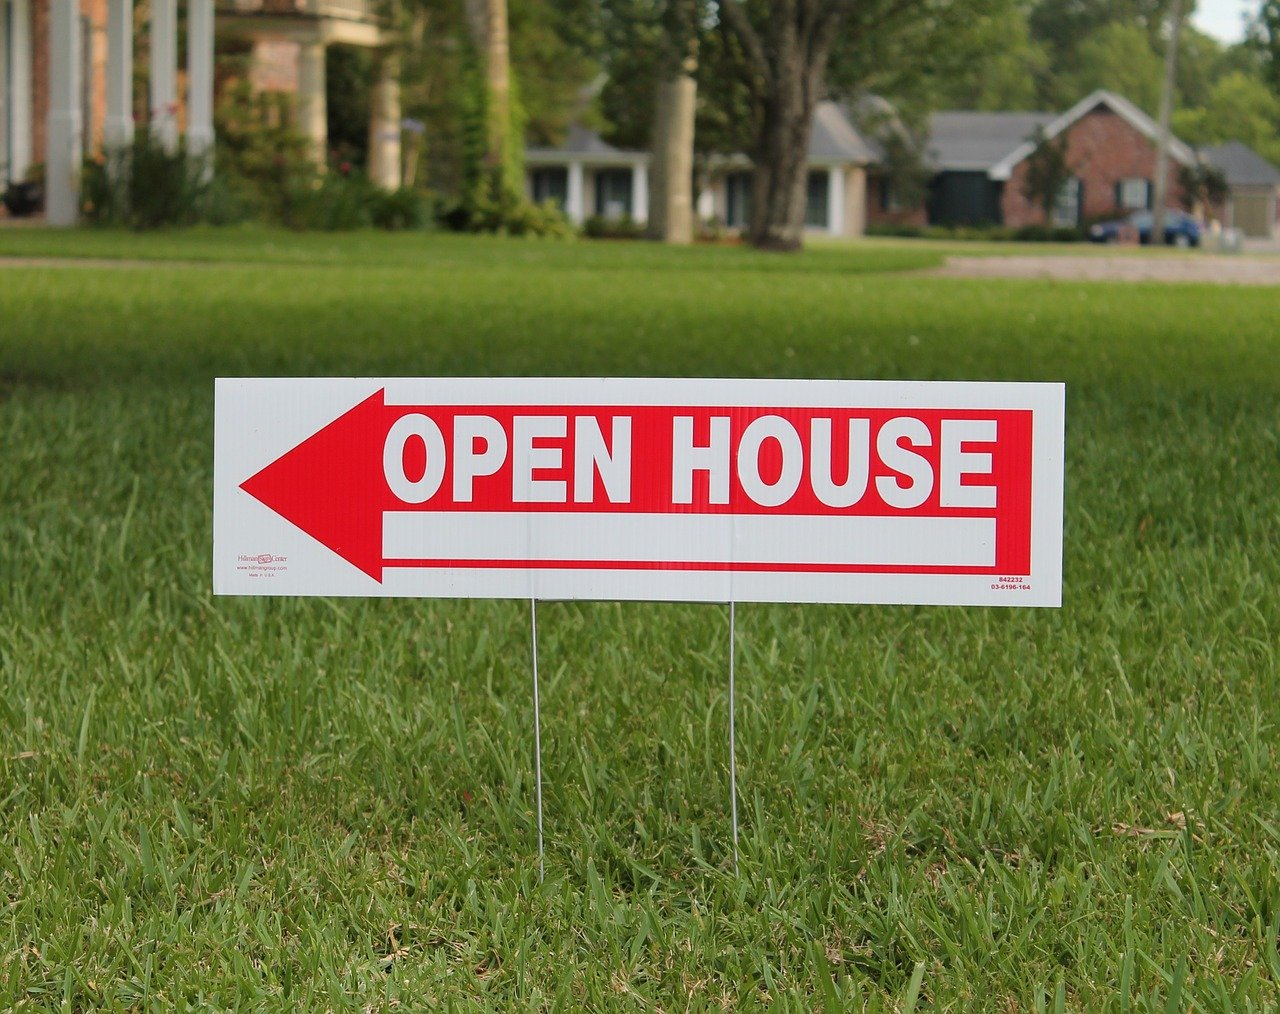 Open house lawn sign showing benefits of October 2020 housing market for buyers.